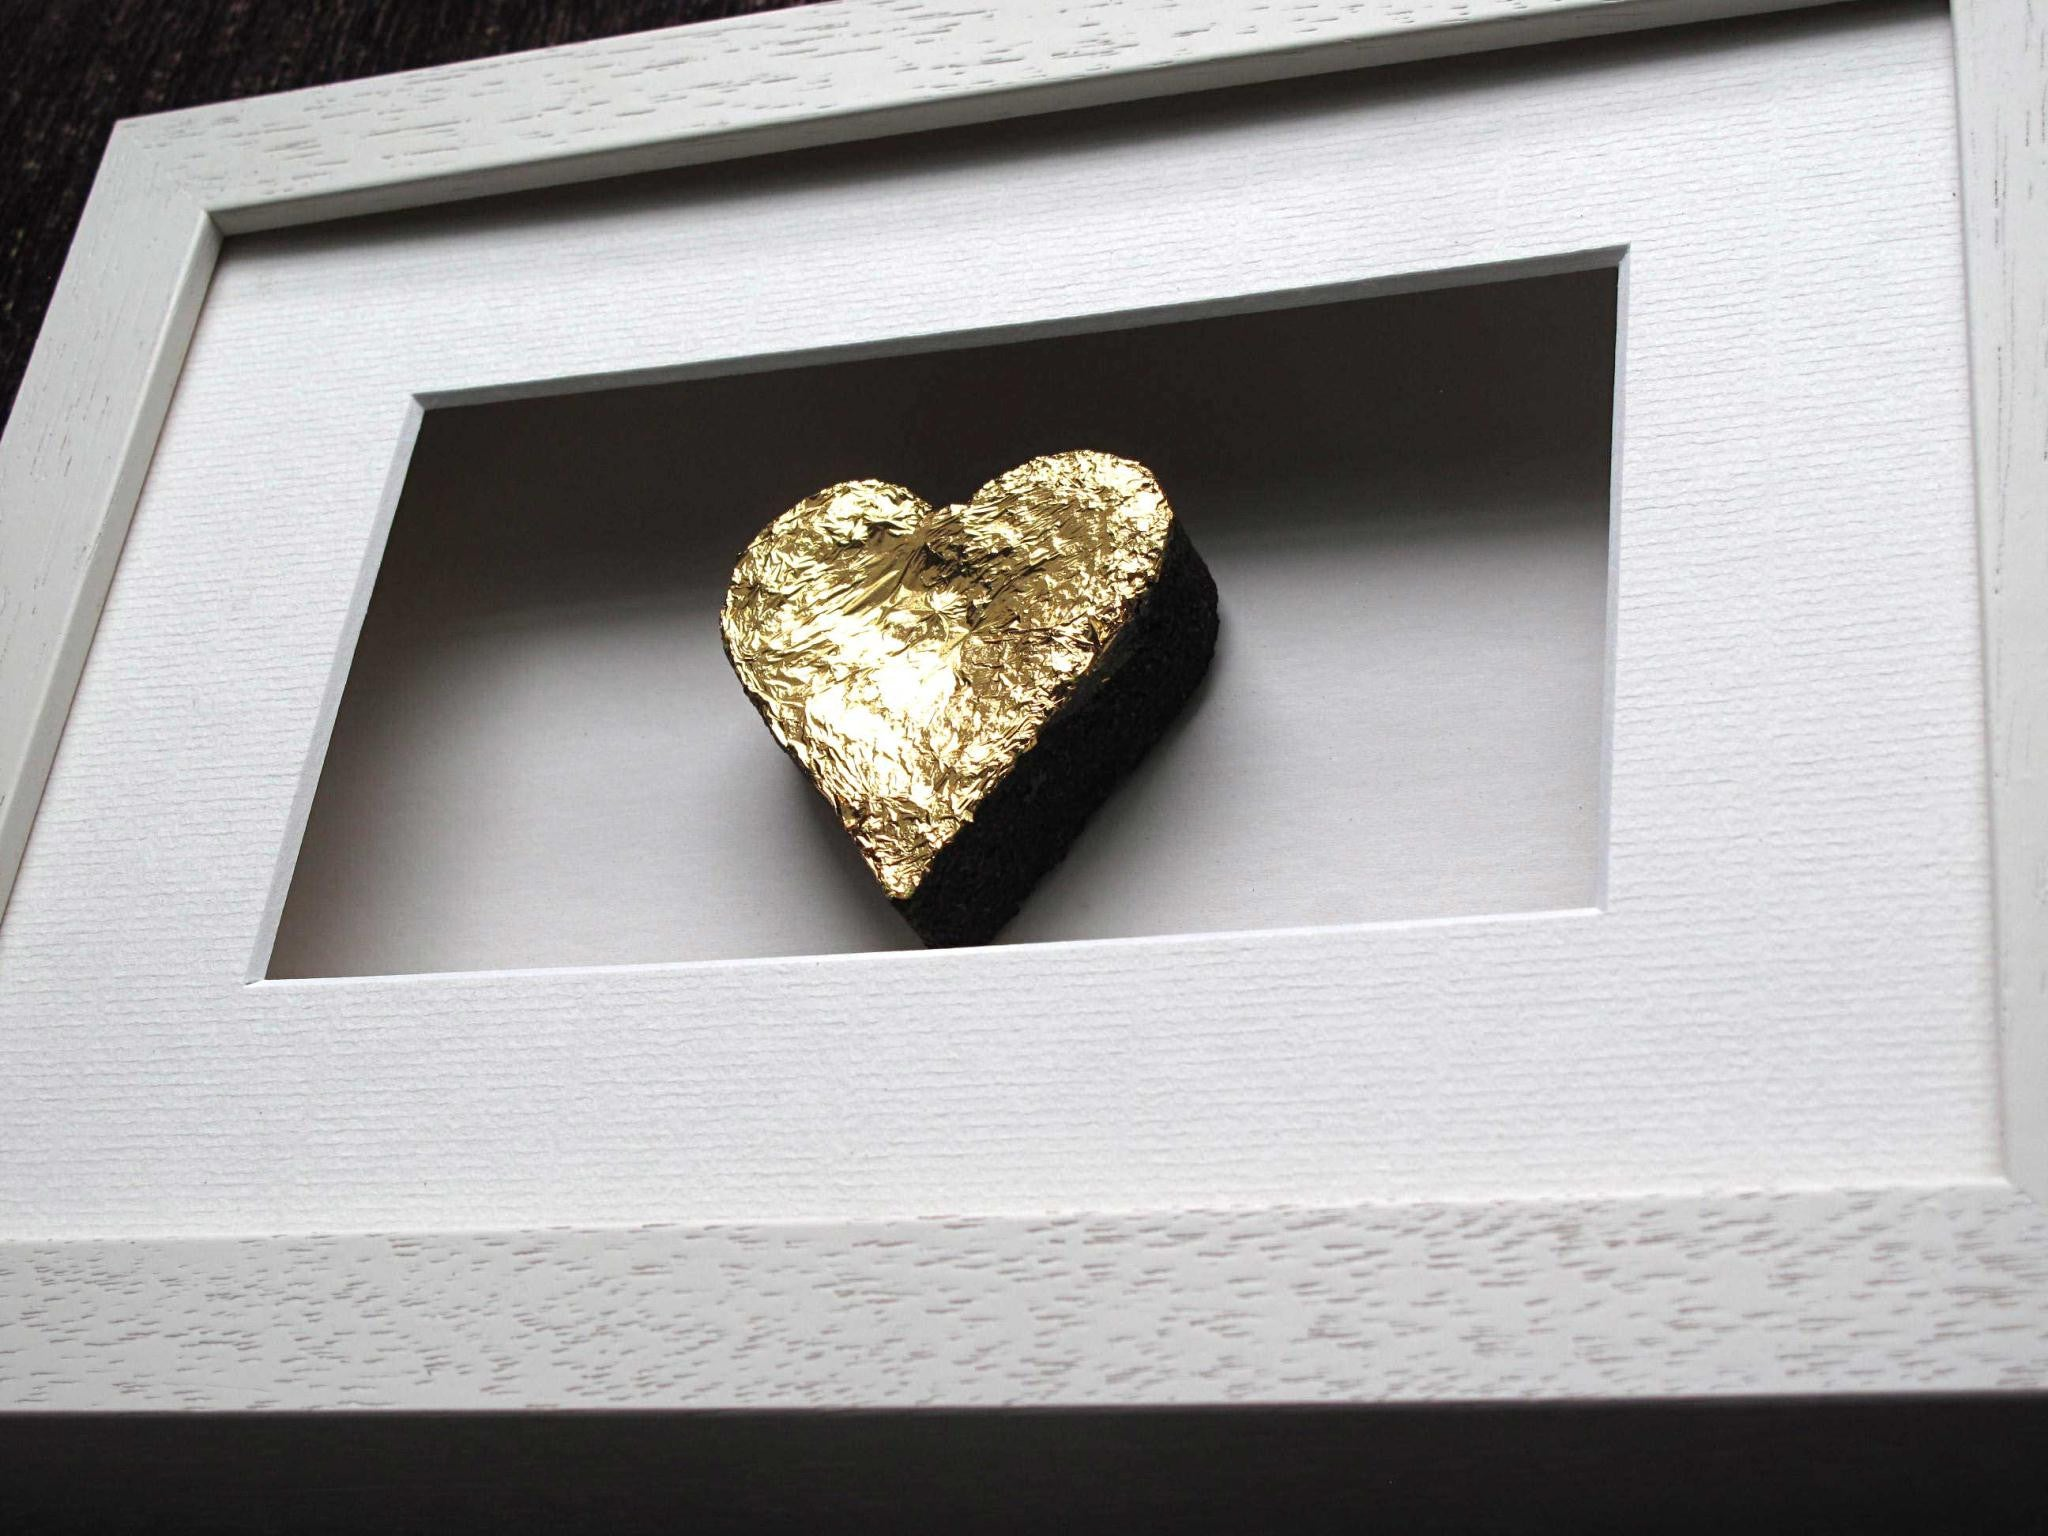 Heart of Gold - 24kt Gold Leaf